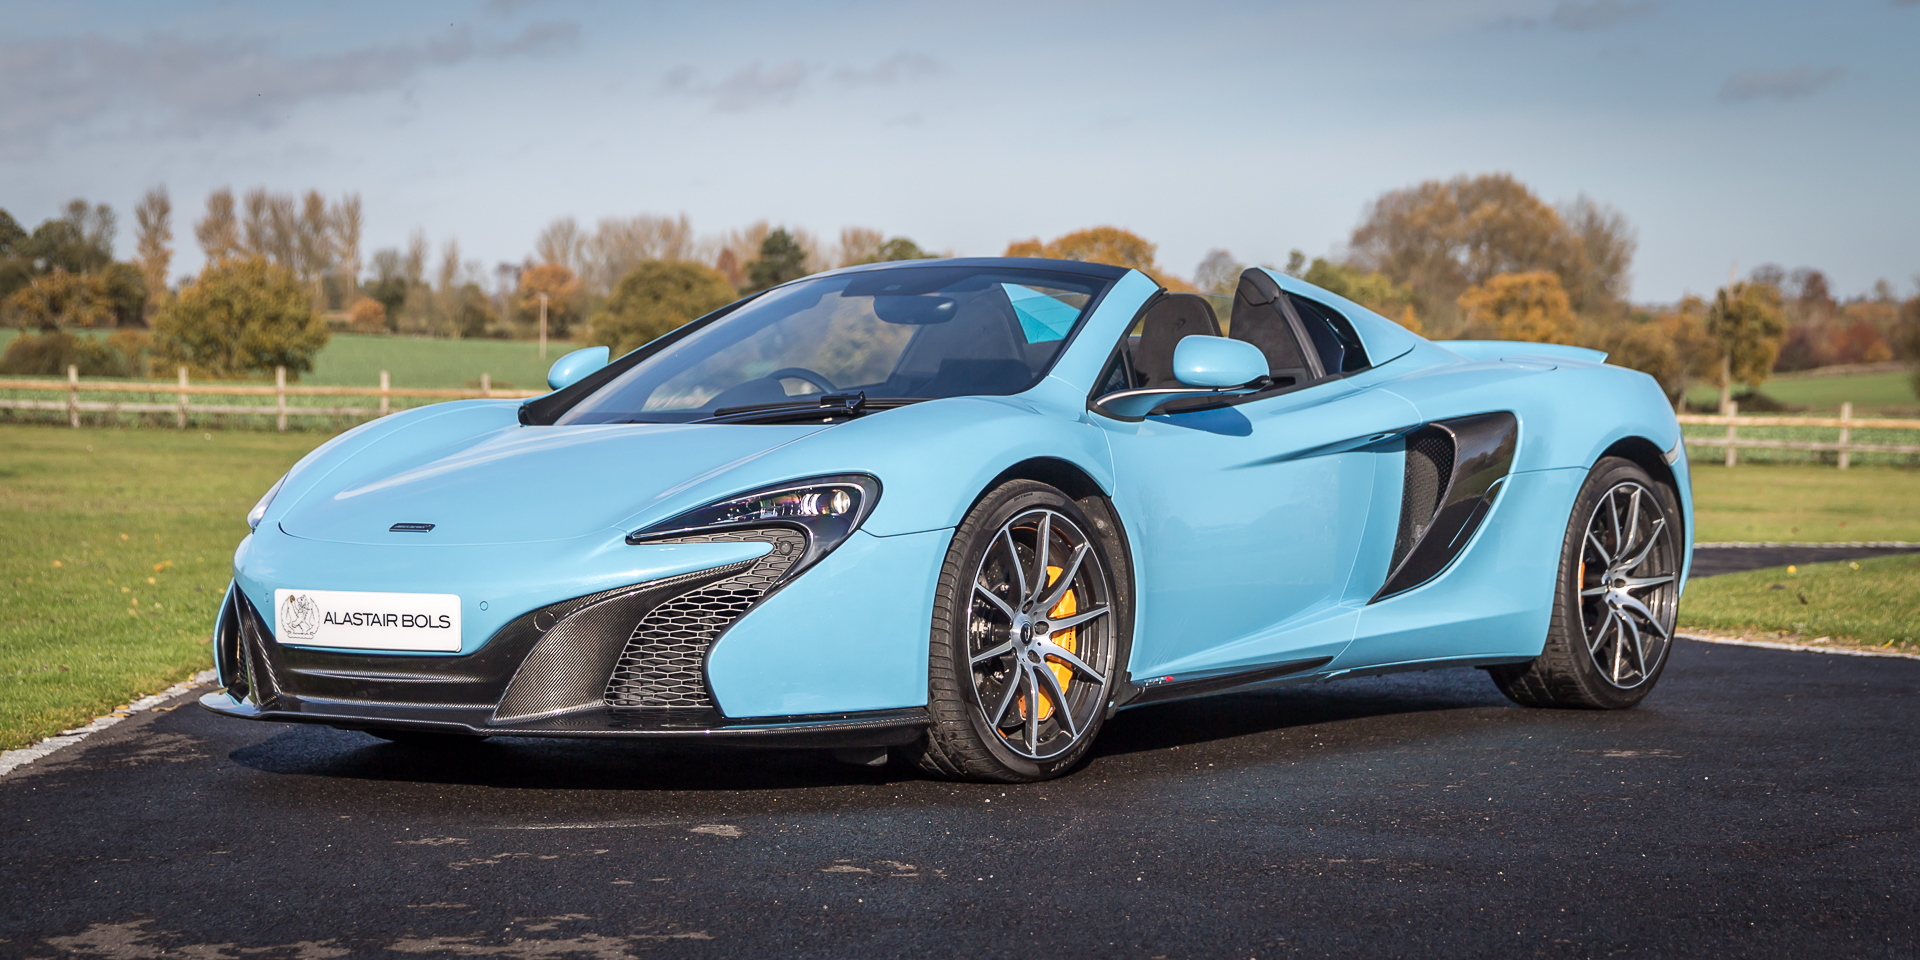 McLaren 650S Spider – Iridium Blue